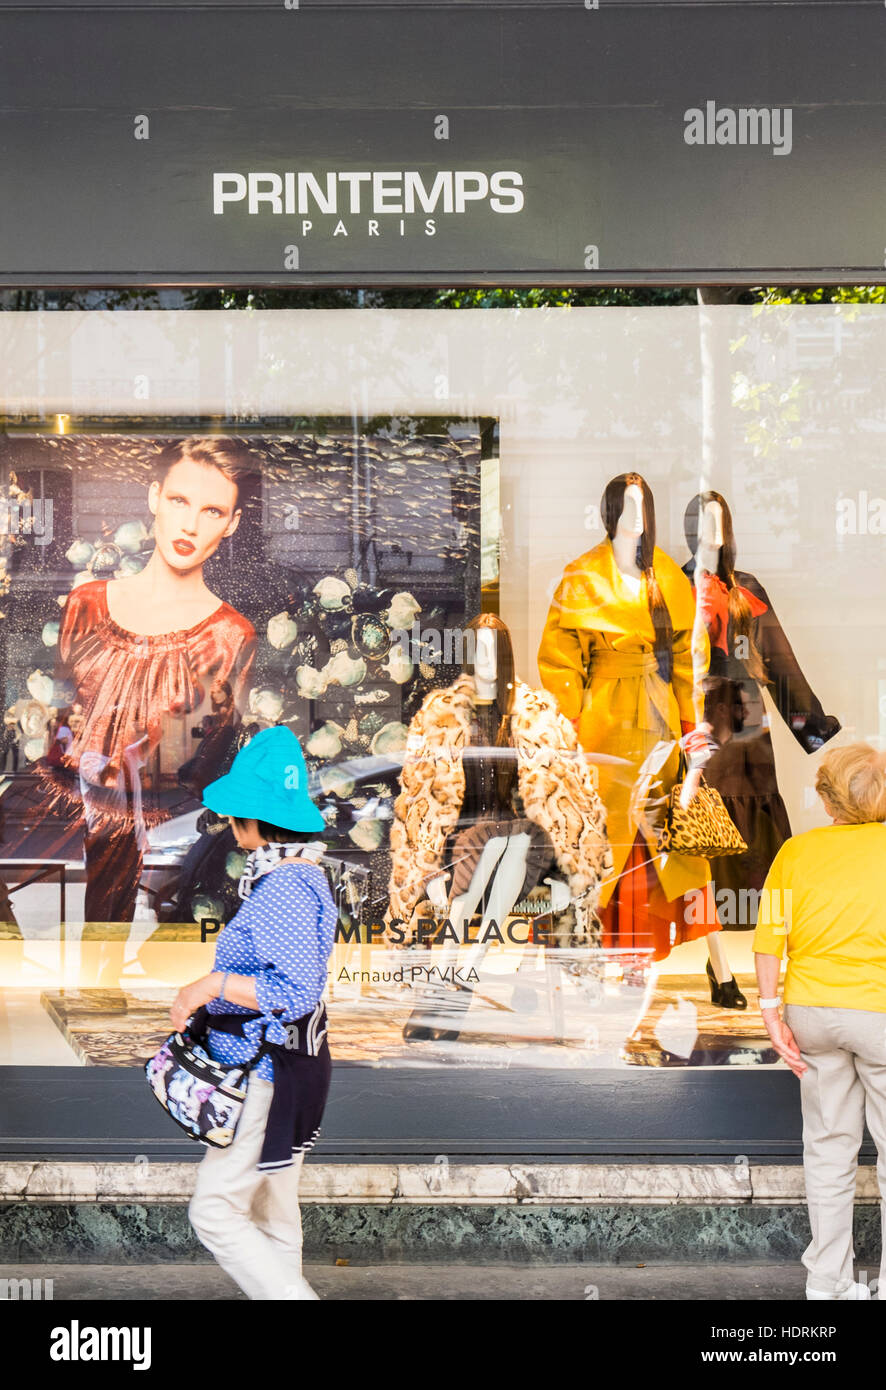 street scene in front of shop window of printemps department store - Stock Image